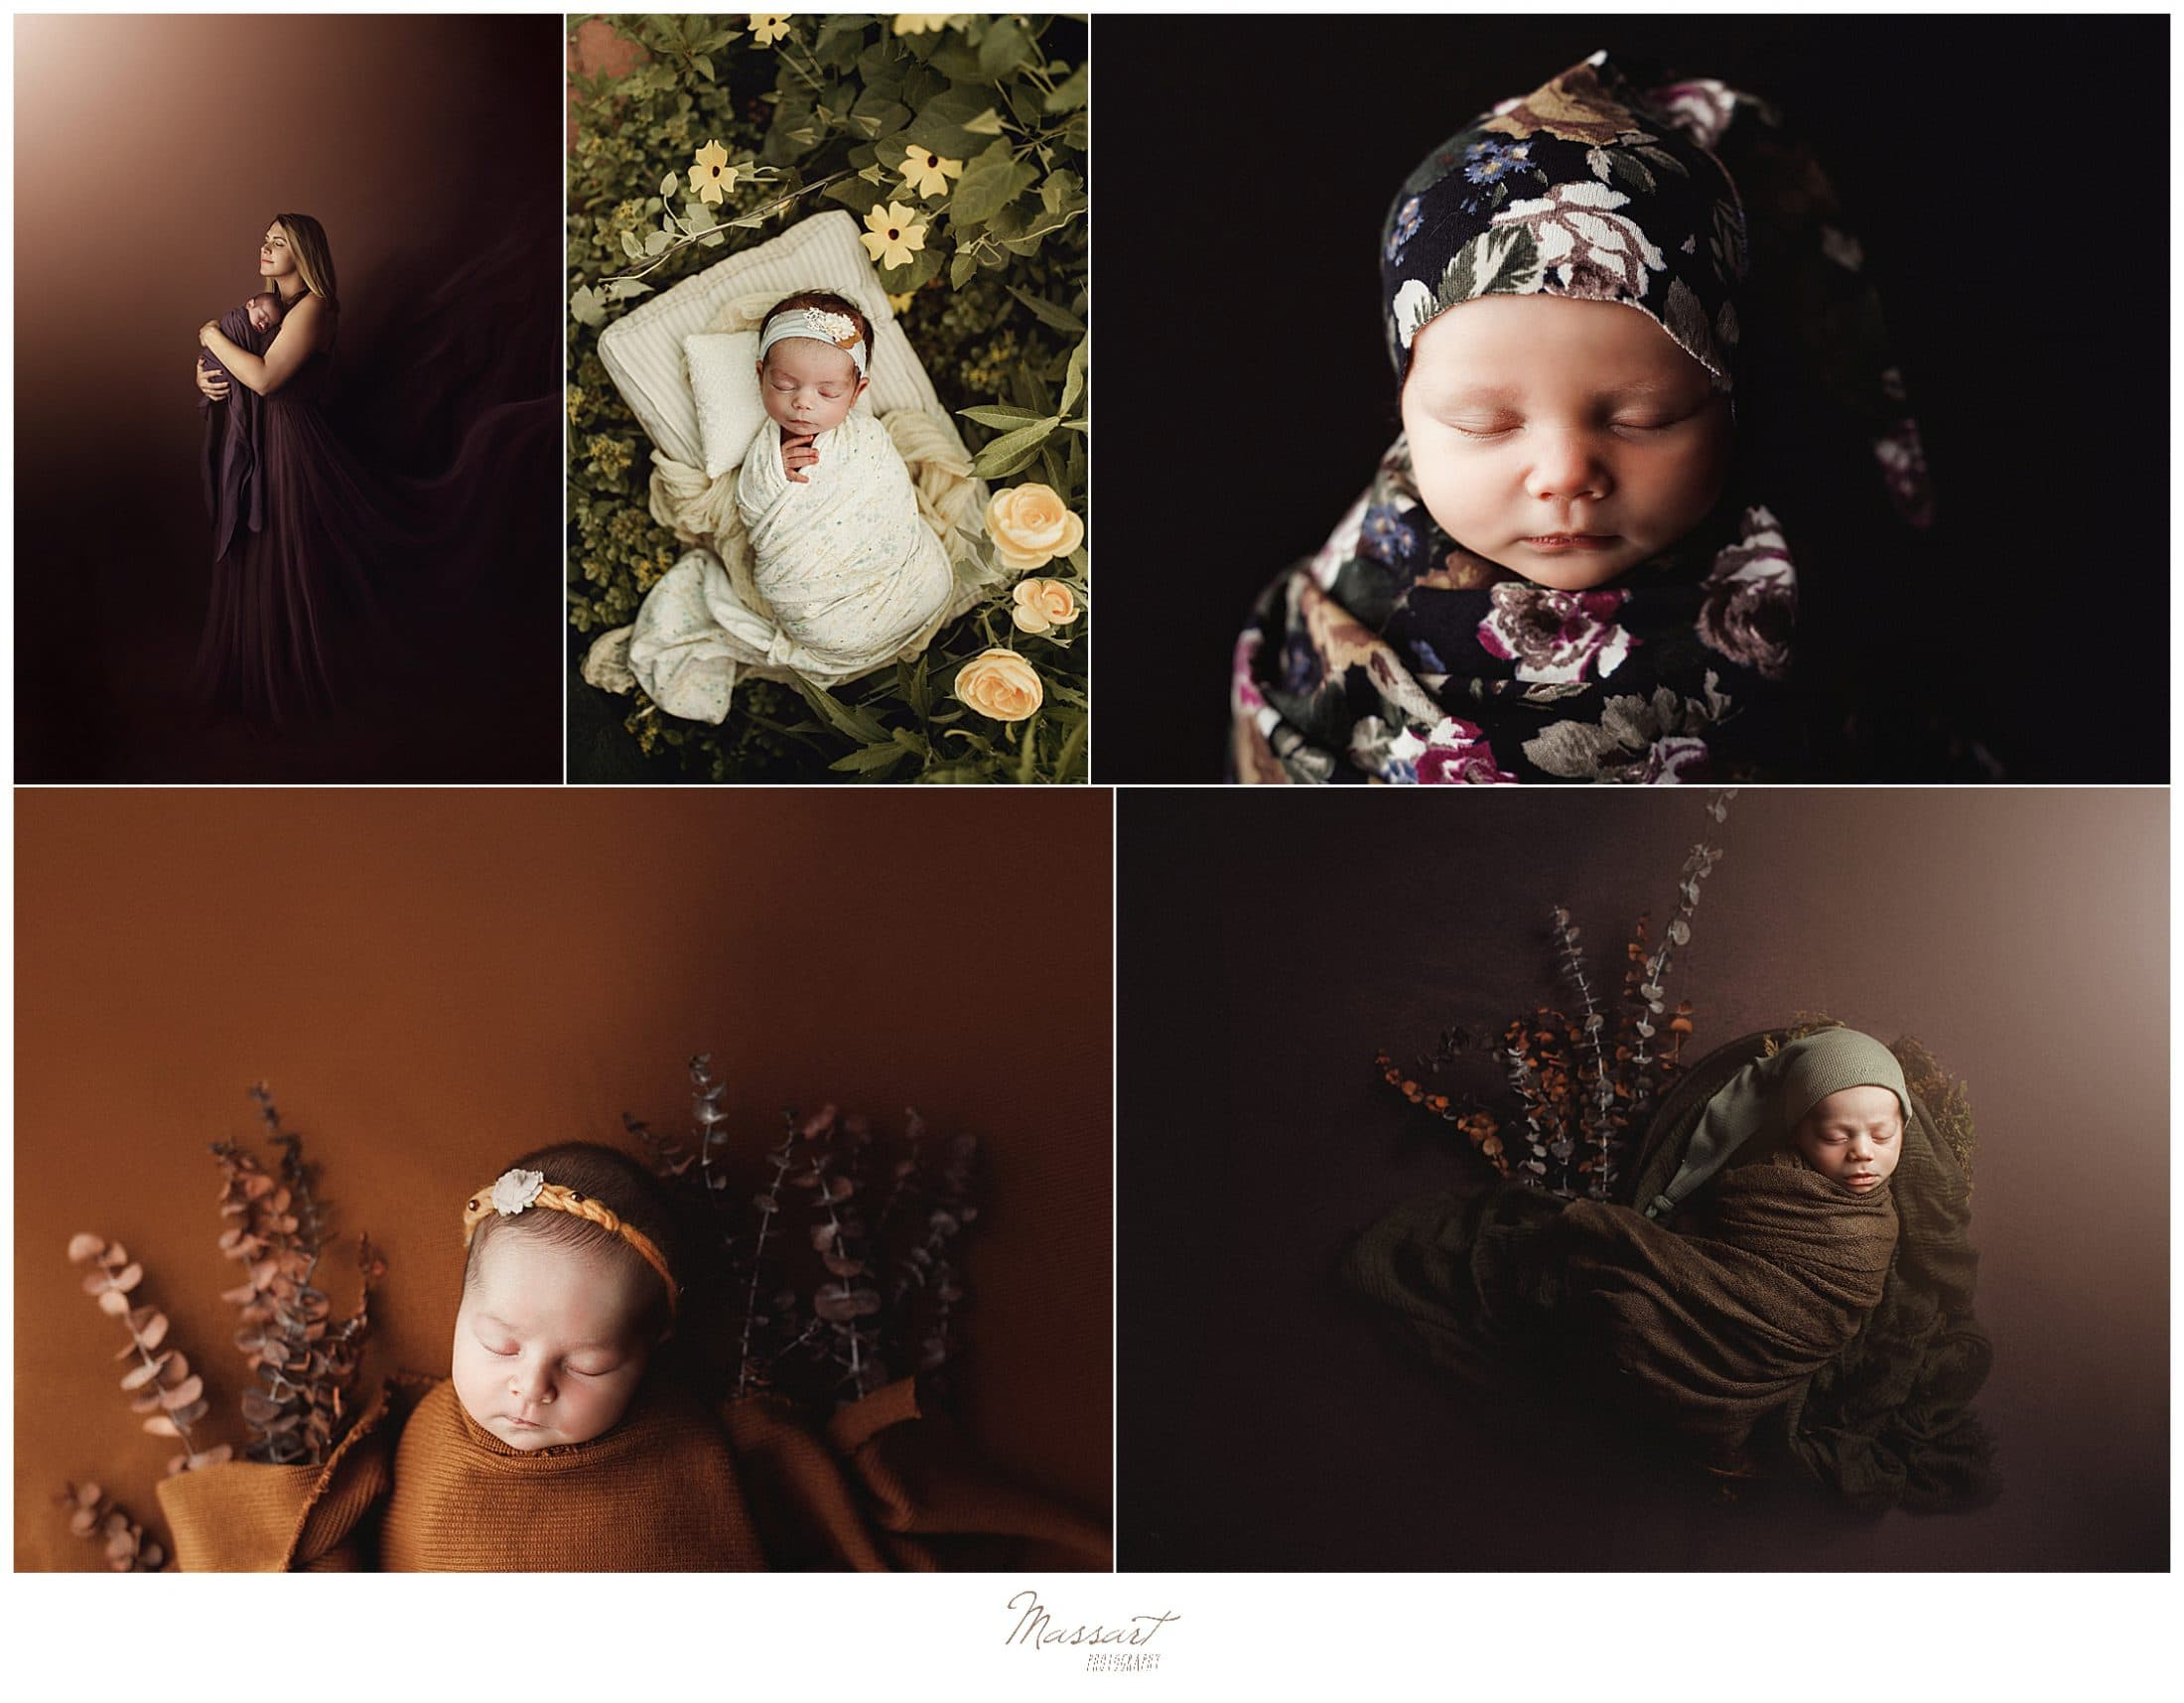 Baby photos taken by Massart Photographers during newborn photo session in Rhode Island